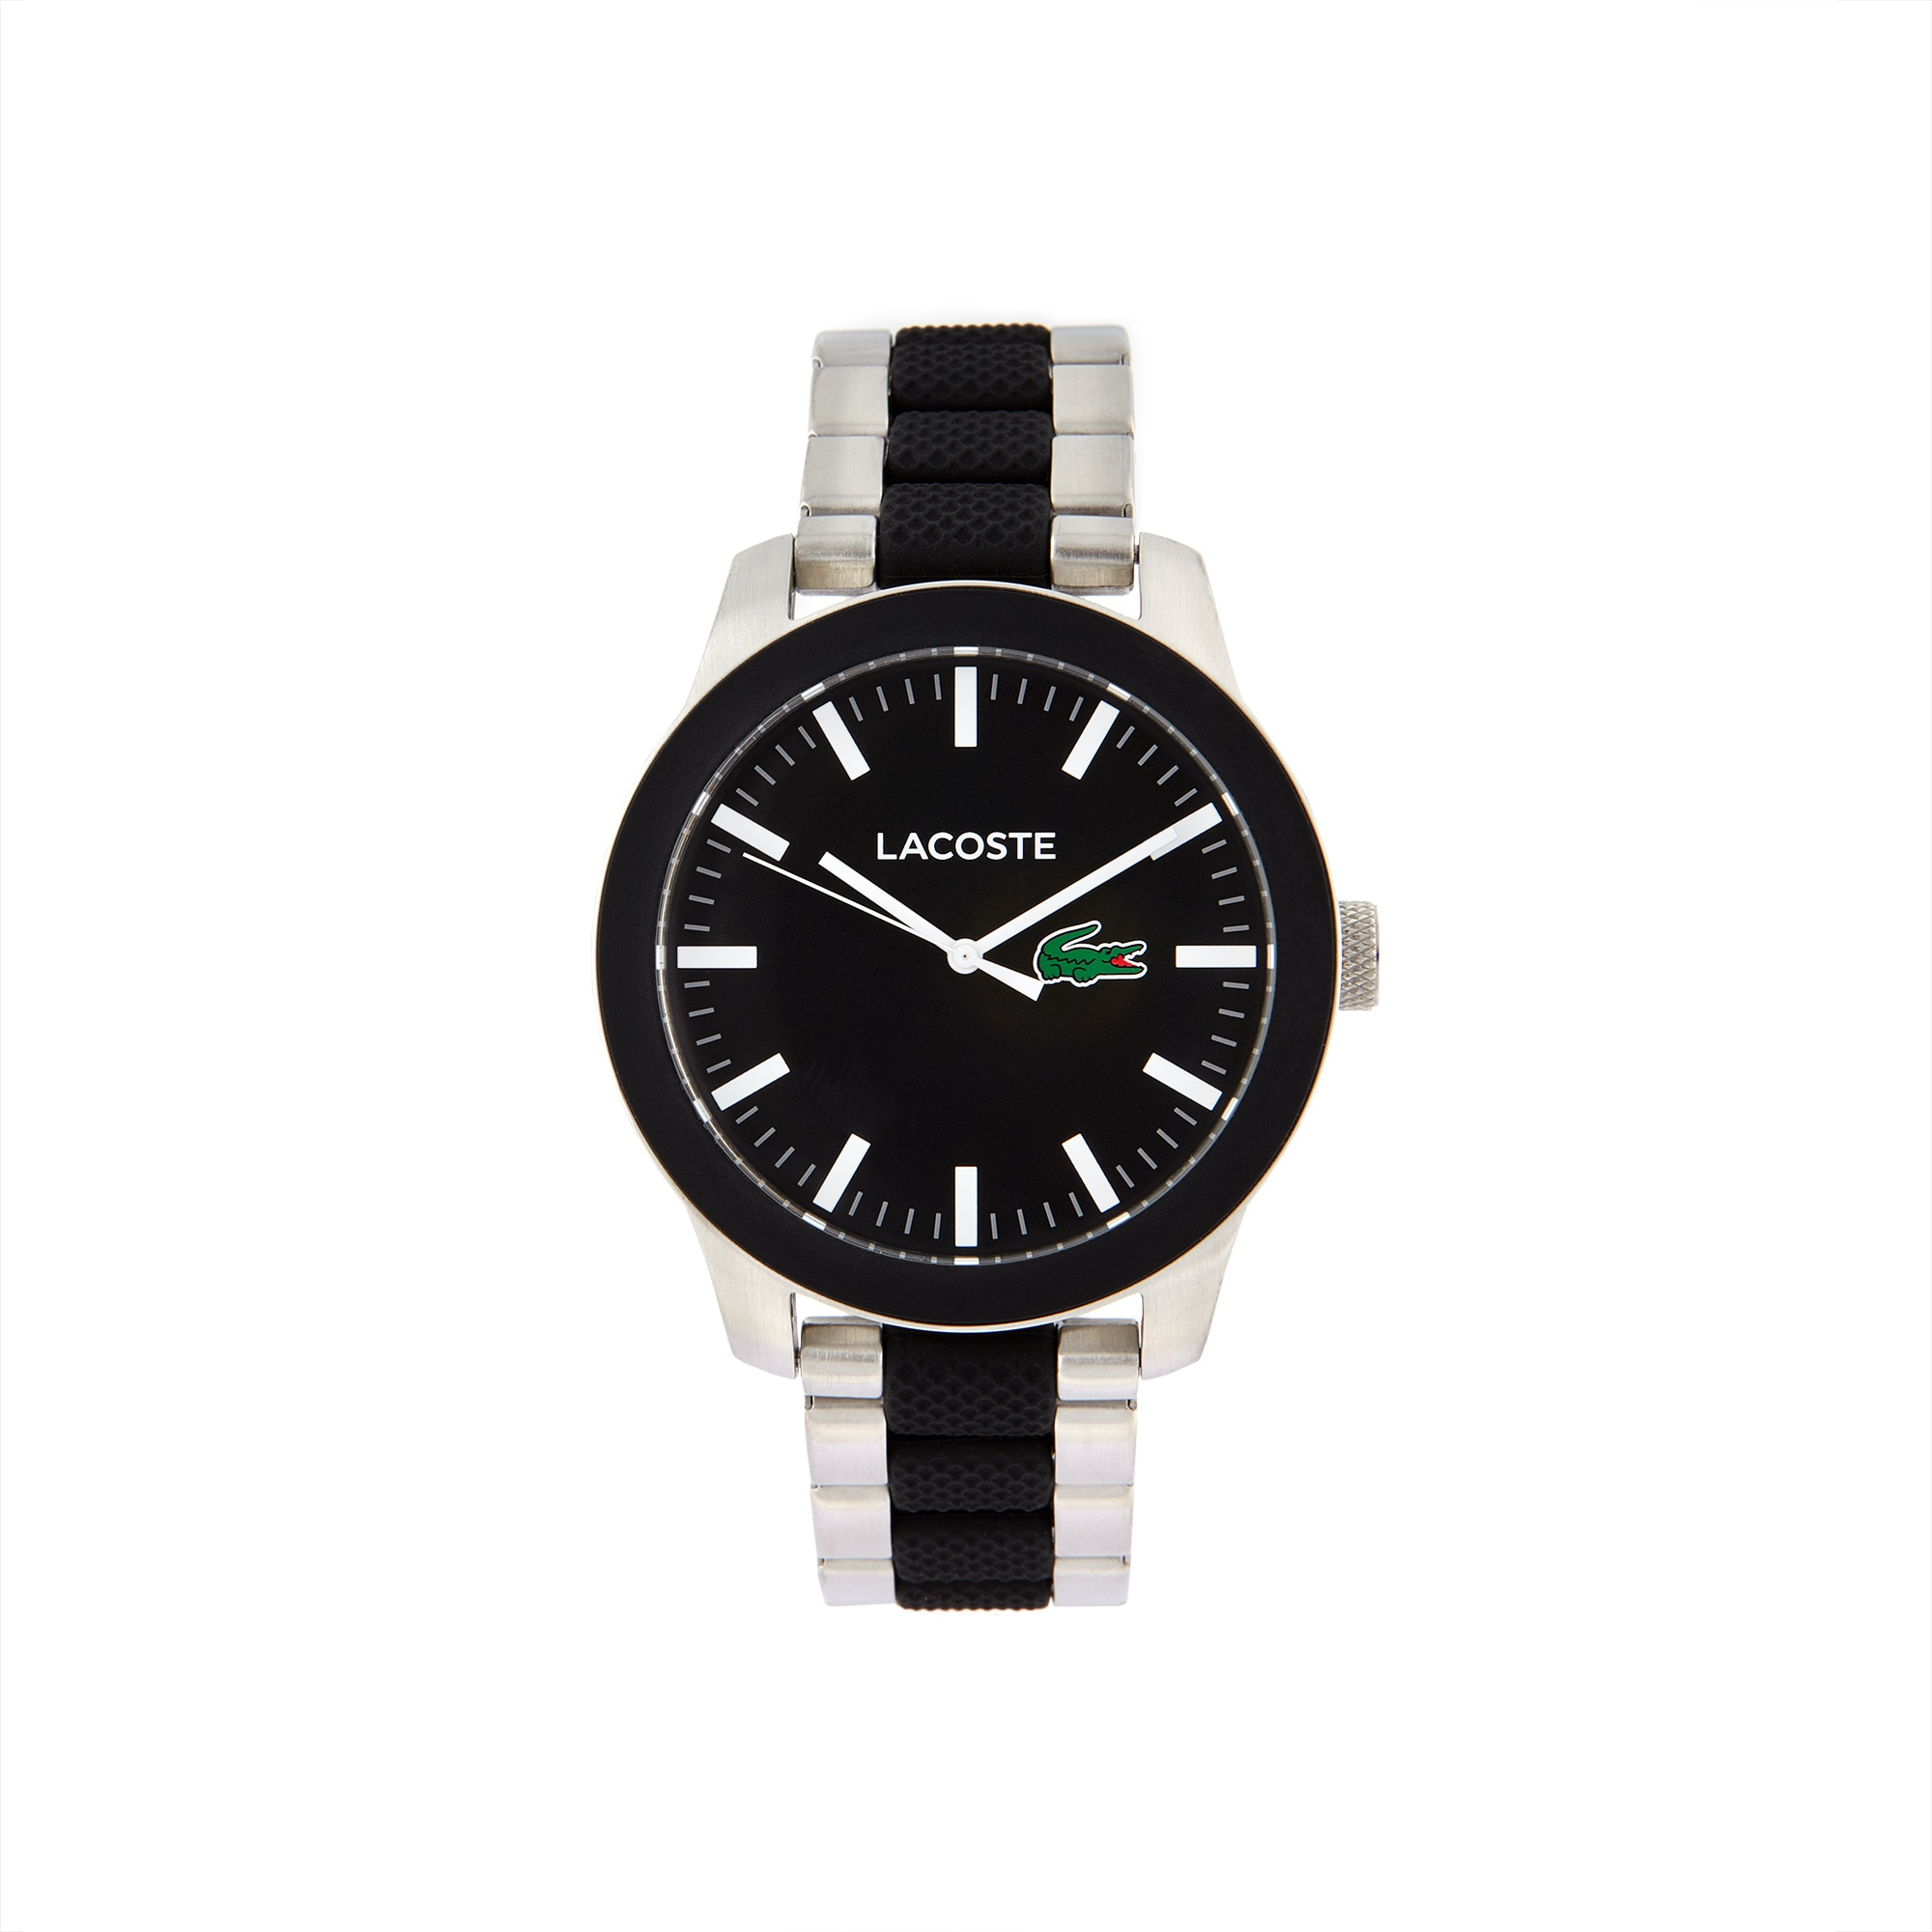 0220d5df698f Men s Lacoste 12.12 Watch with White Silicone Strap.  95.00. 30% off.  Unisex Lacoste.12.12 Mixed Material Black Watch